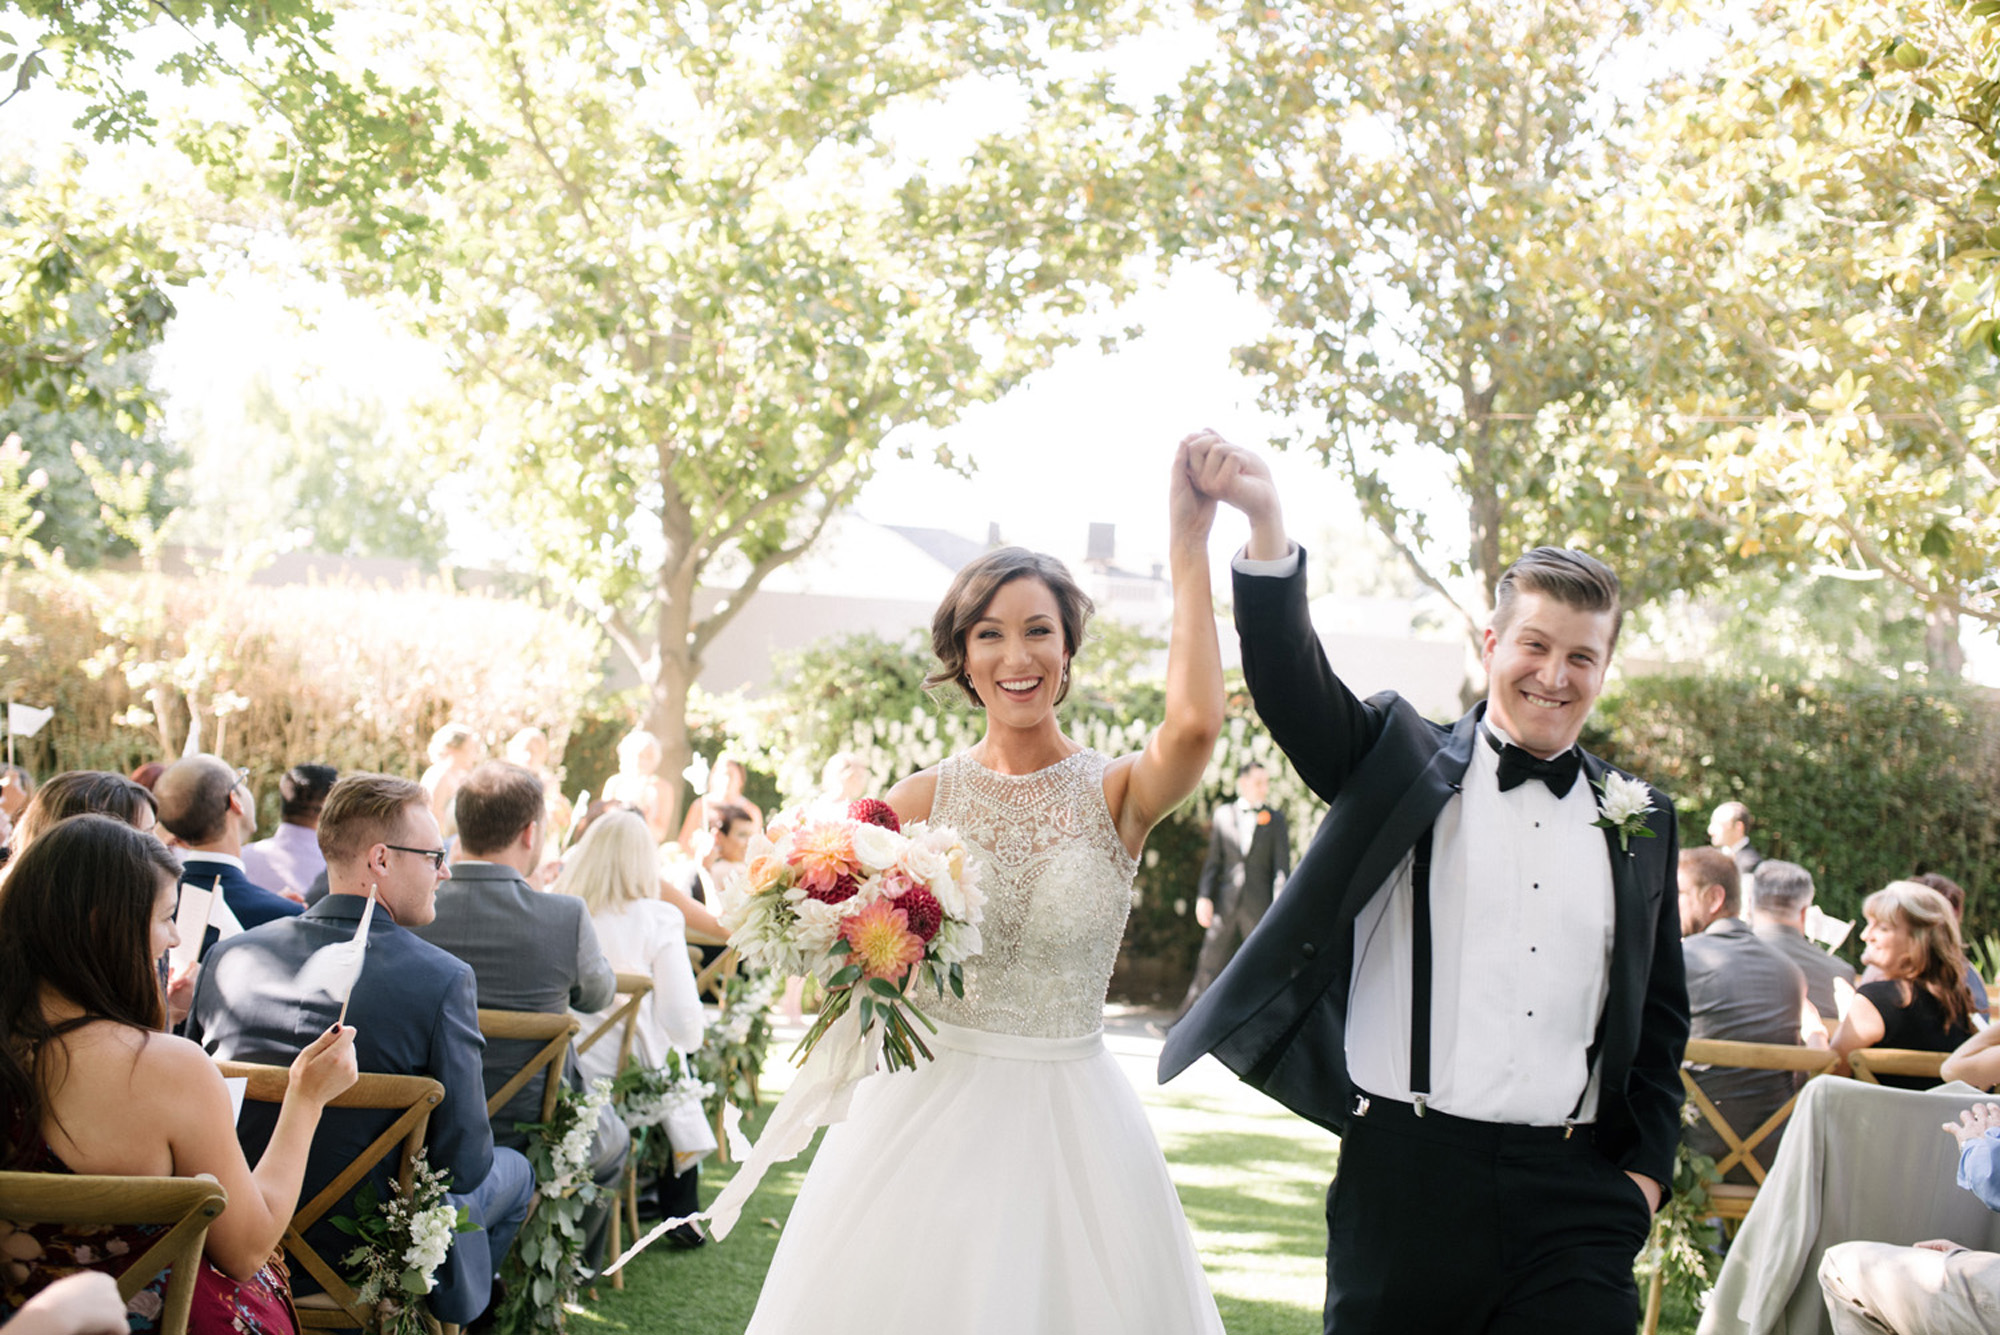 classic bride and groom exit their wedding ceremony with hands held high with joy documentary